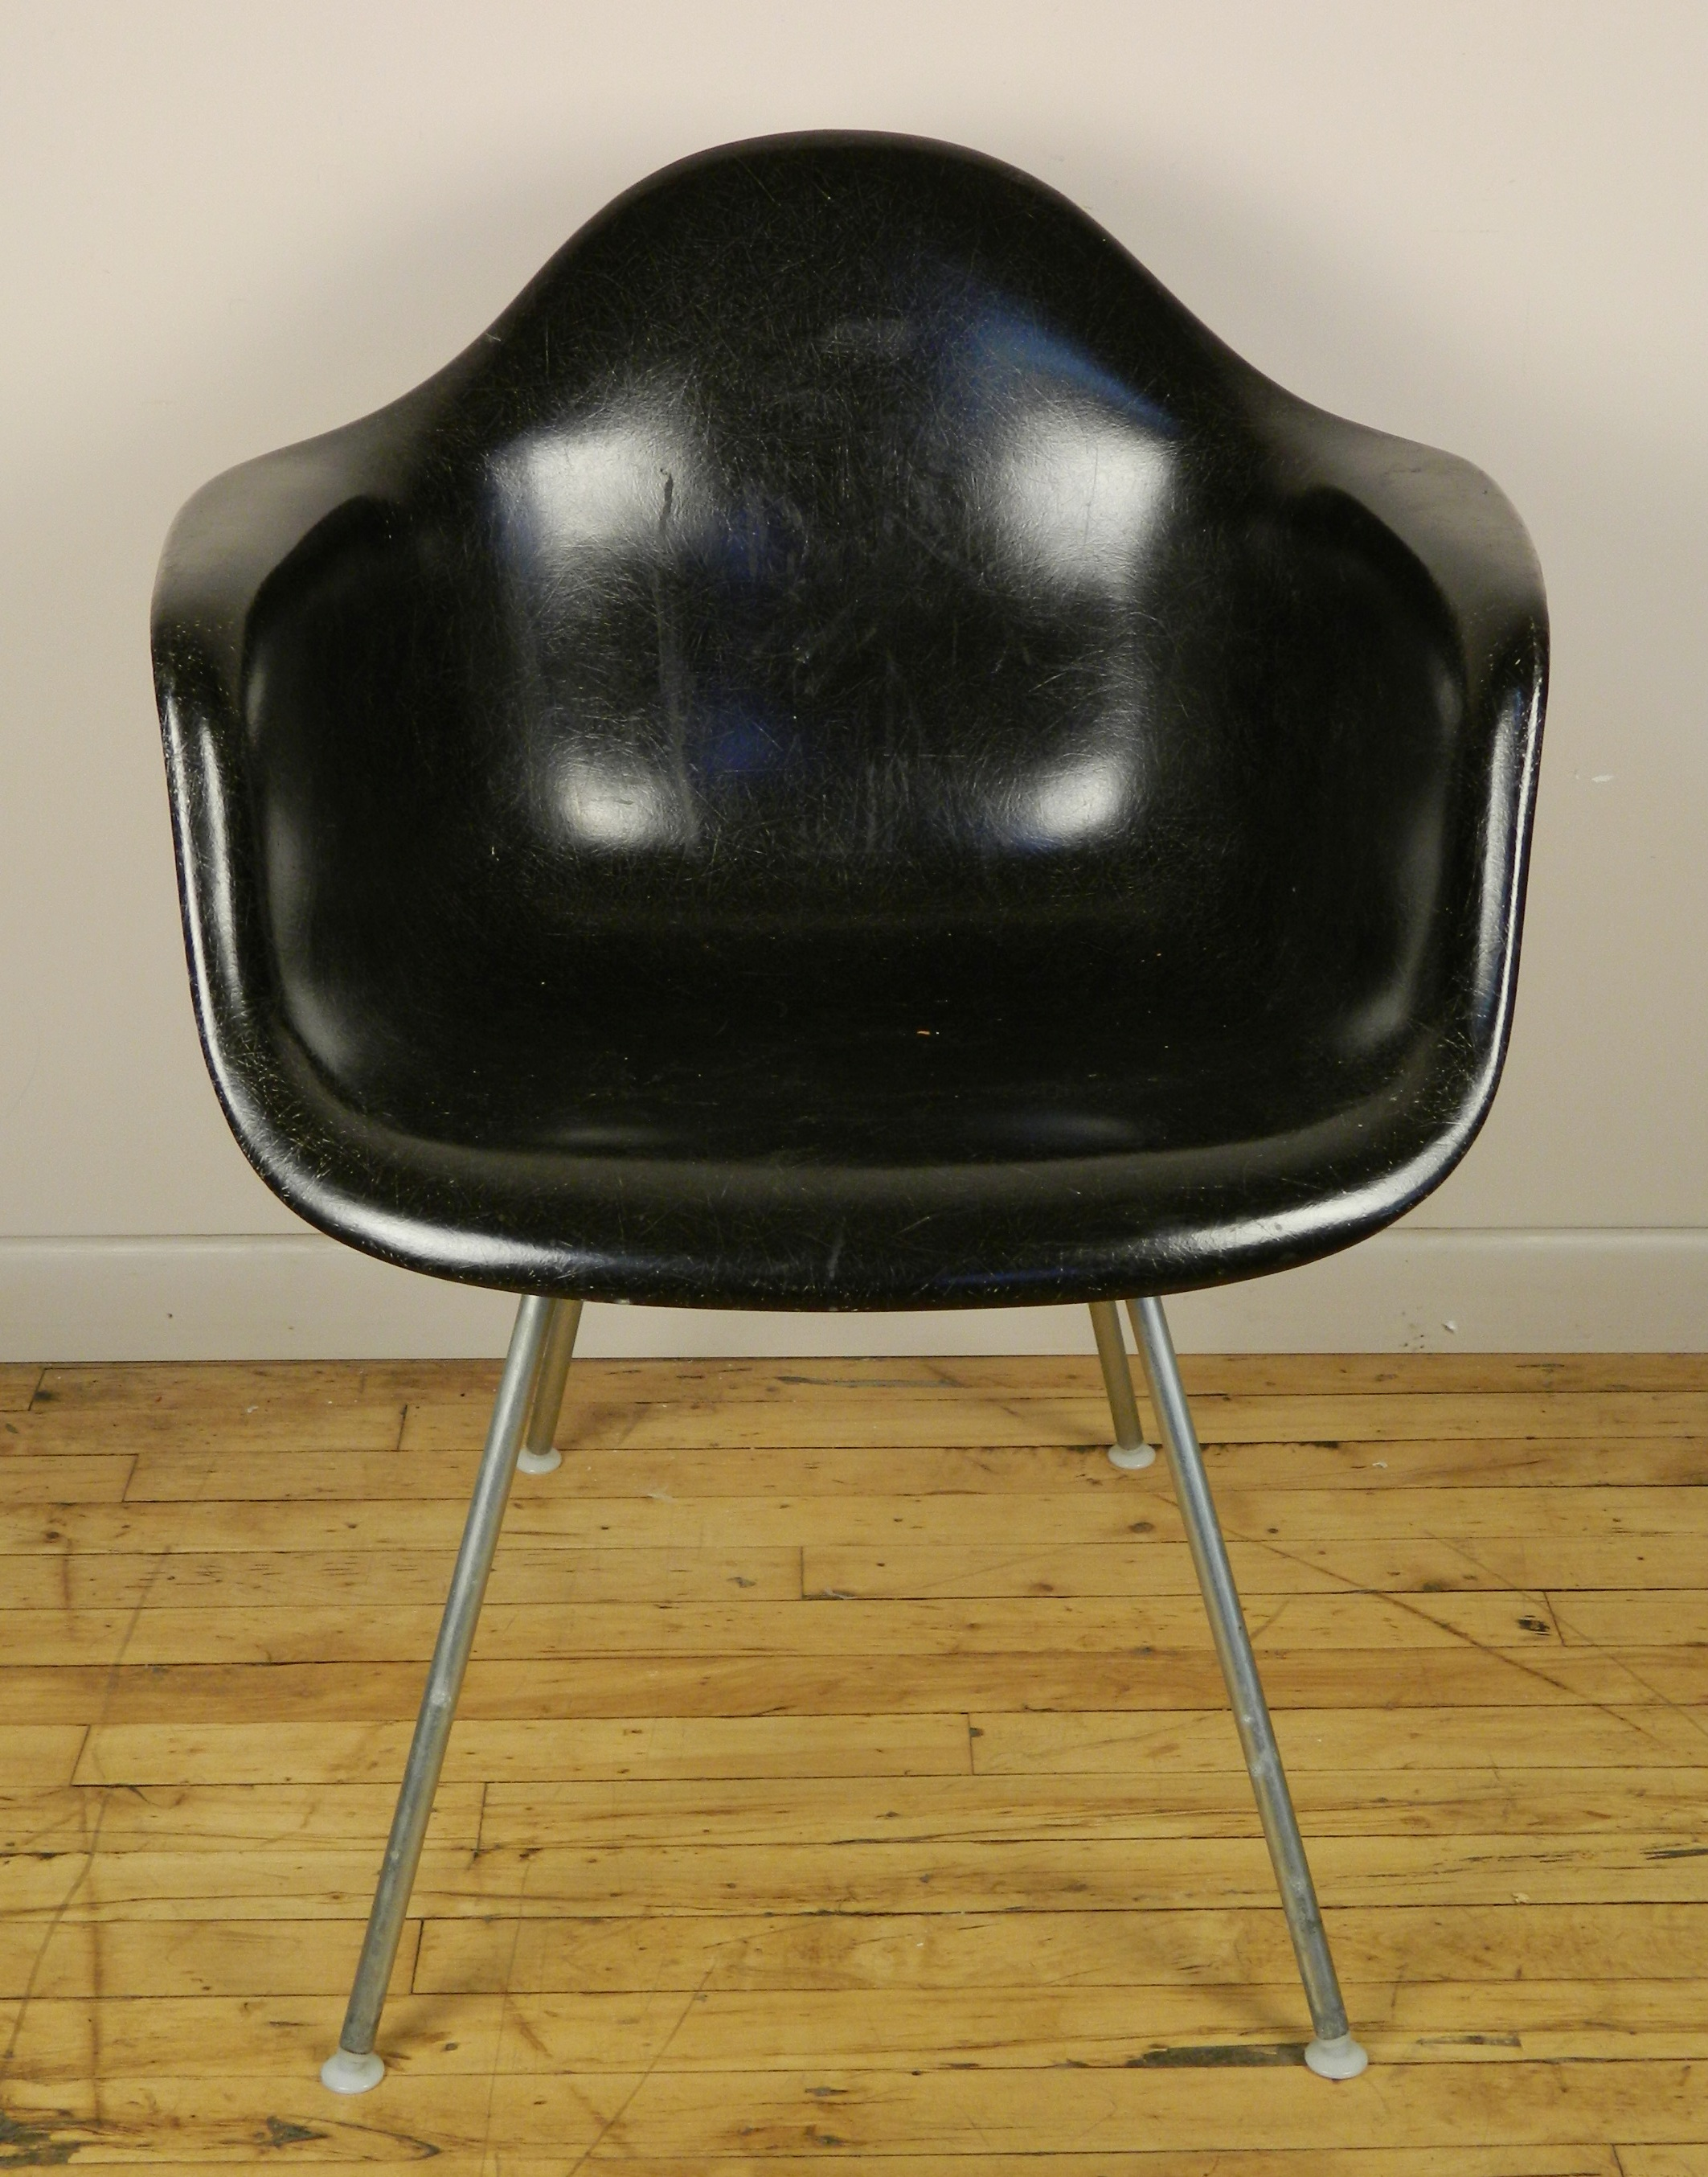 Charles Eames   Lose in unserem Preisarchiv   LotSearch